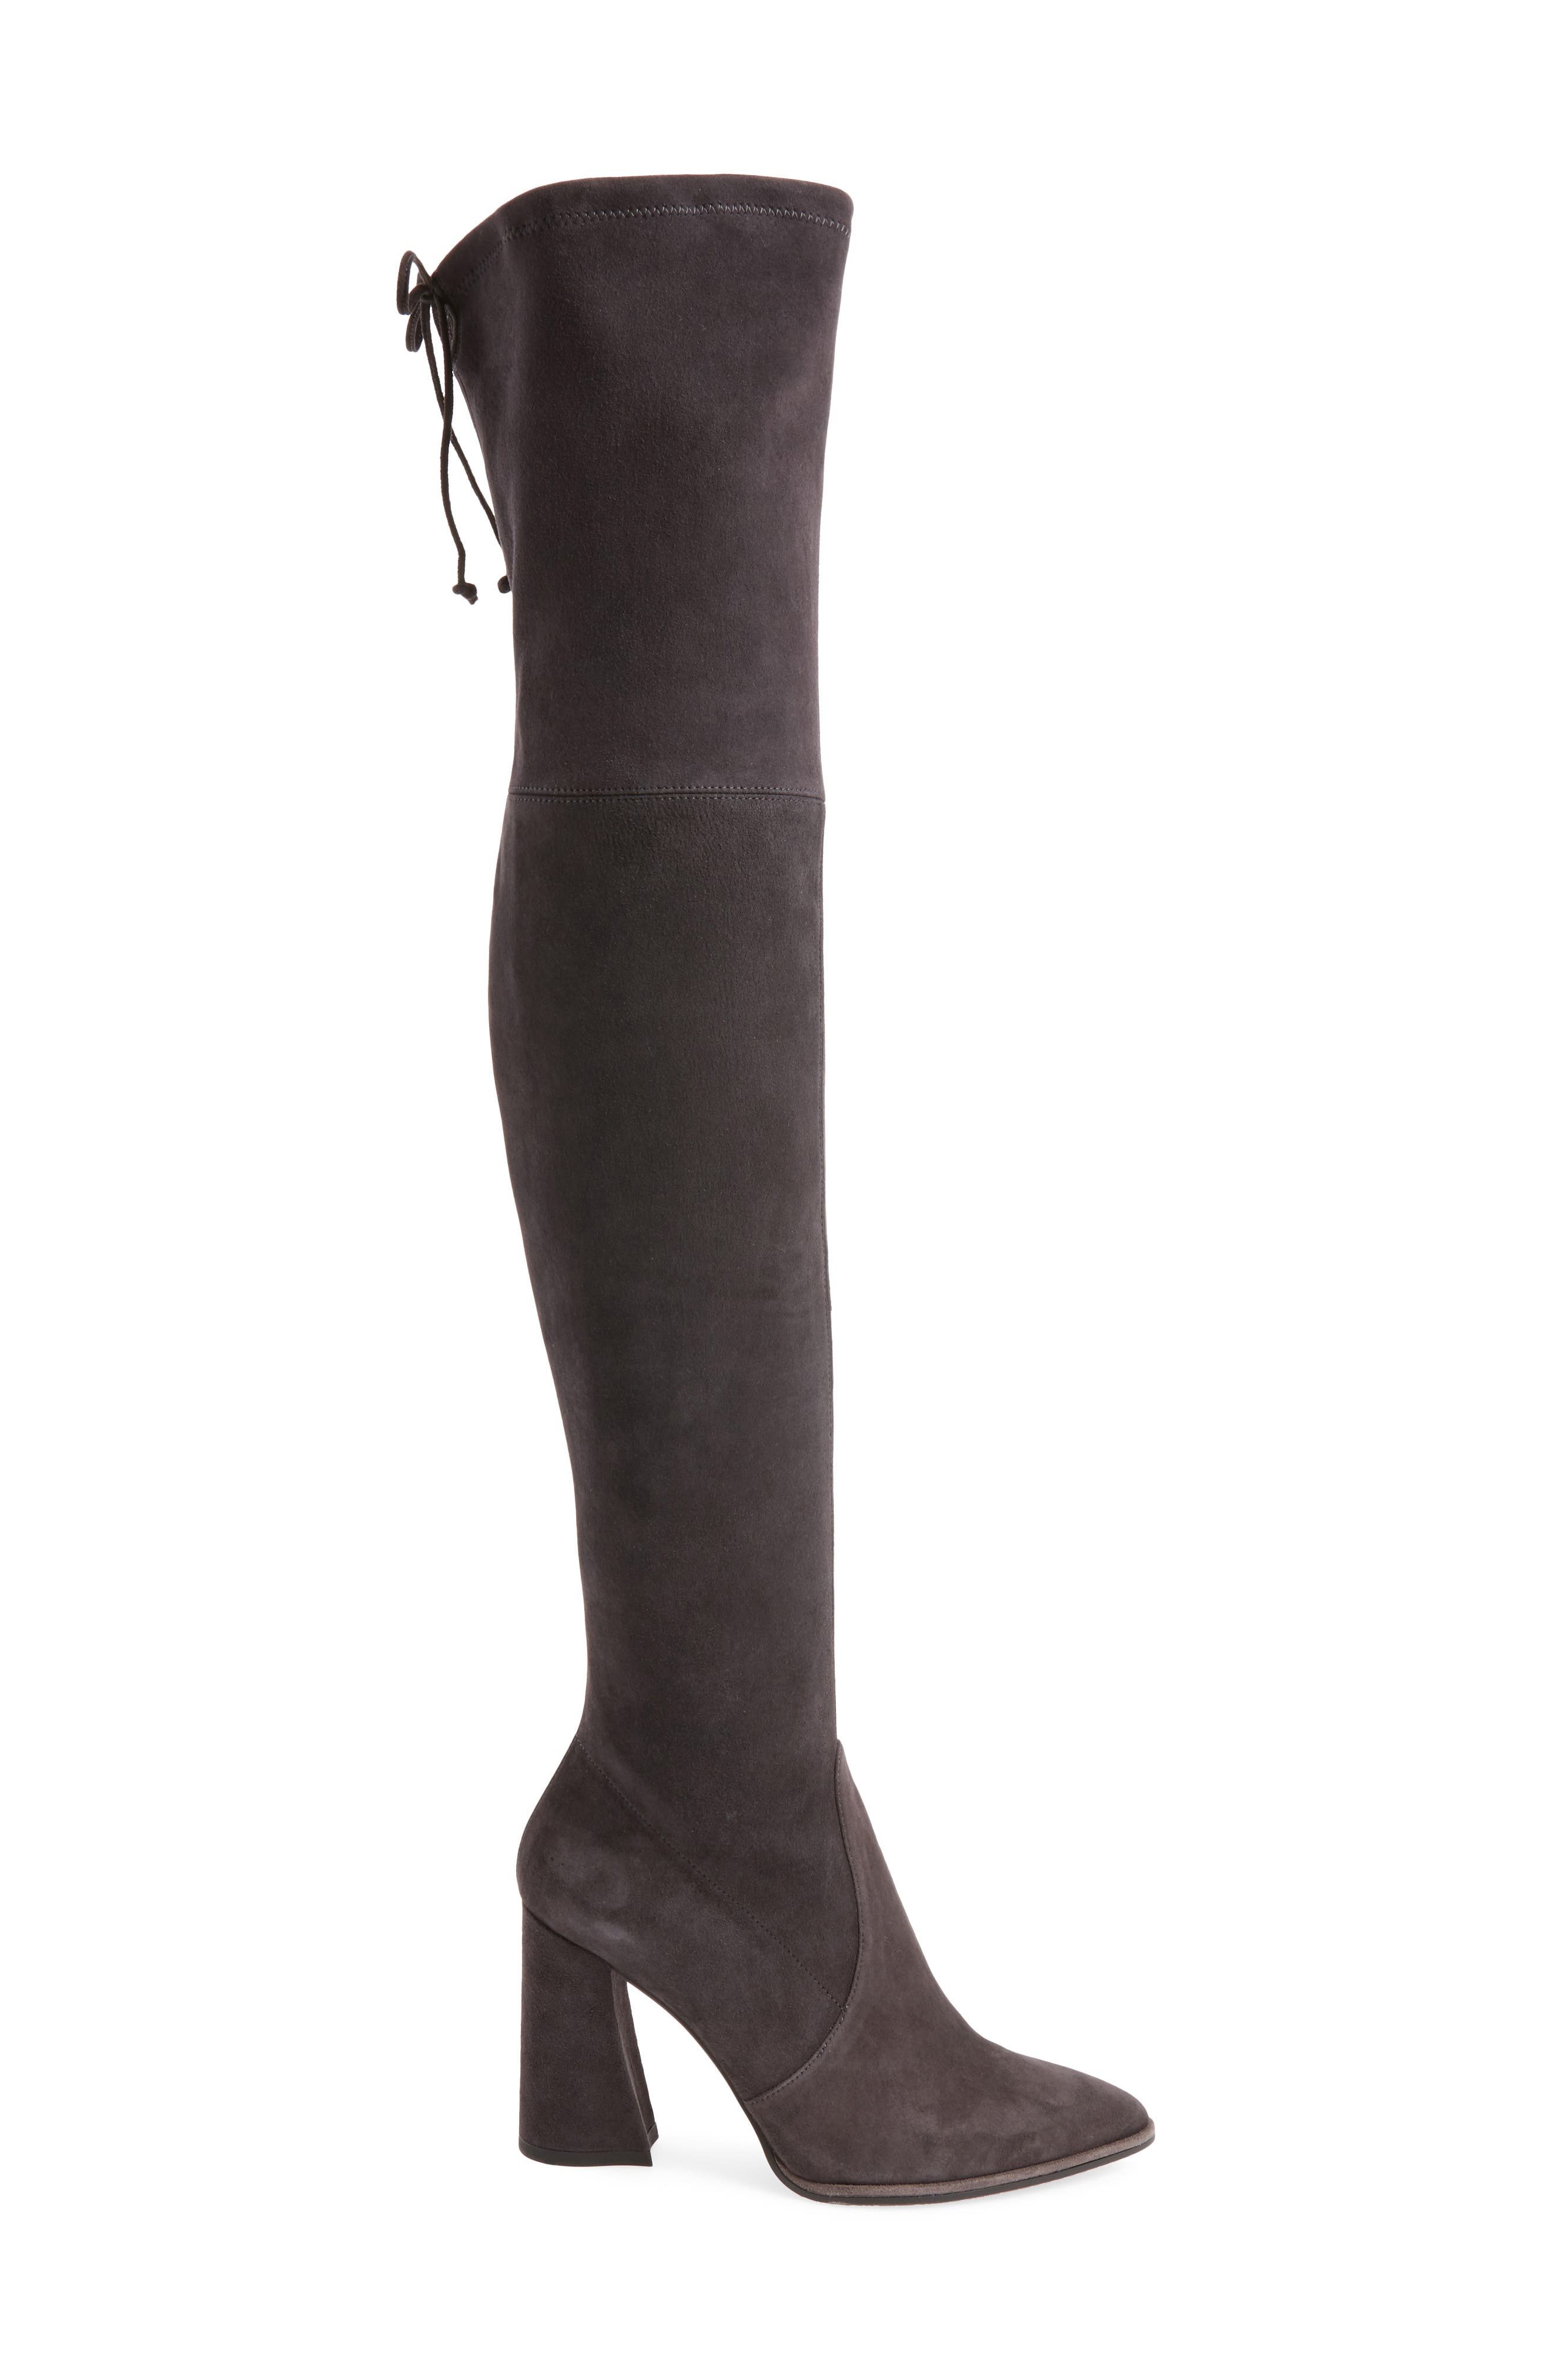 Funland Over the Knee Boot,                             Alternate thumbnail 3, color,                             Anthracite Suede